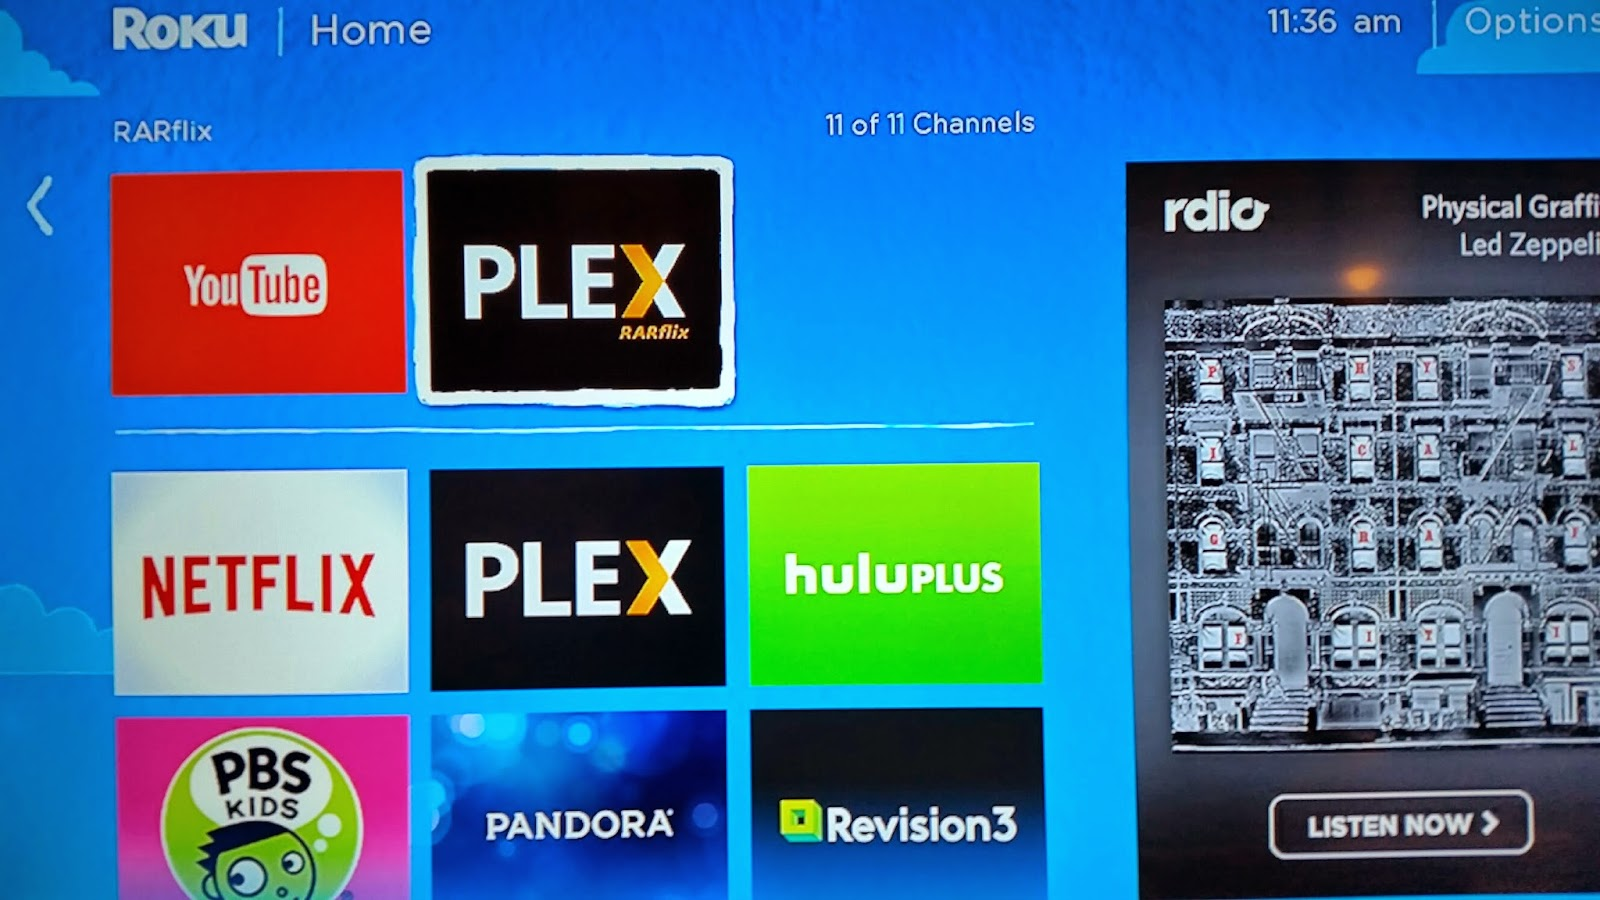 Your Roku Plex app is asking for money? Don't panic! ~ Bauer